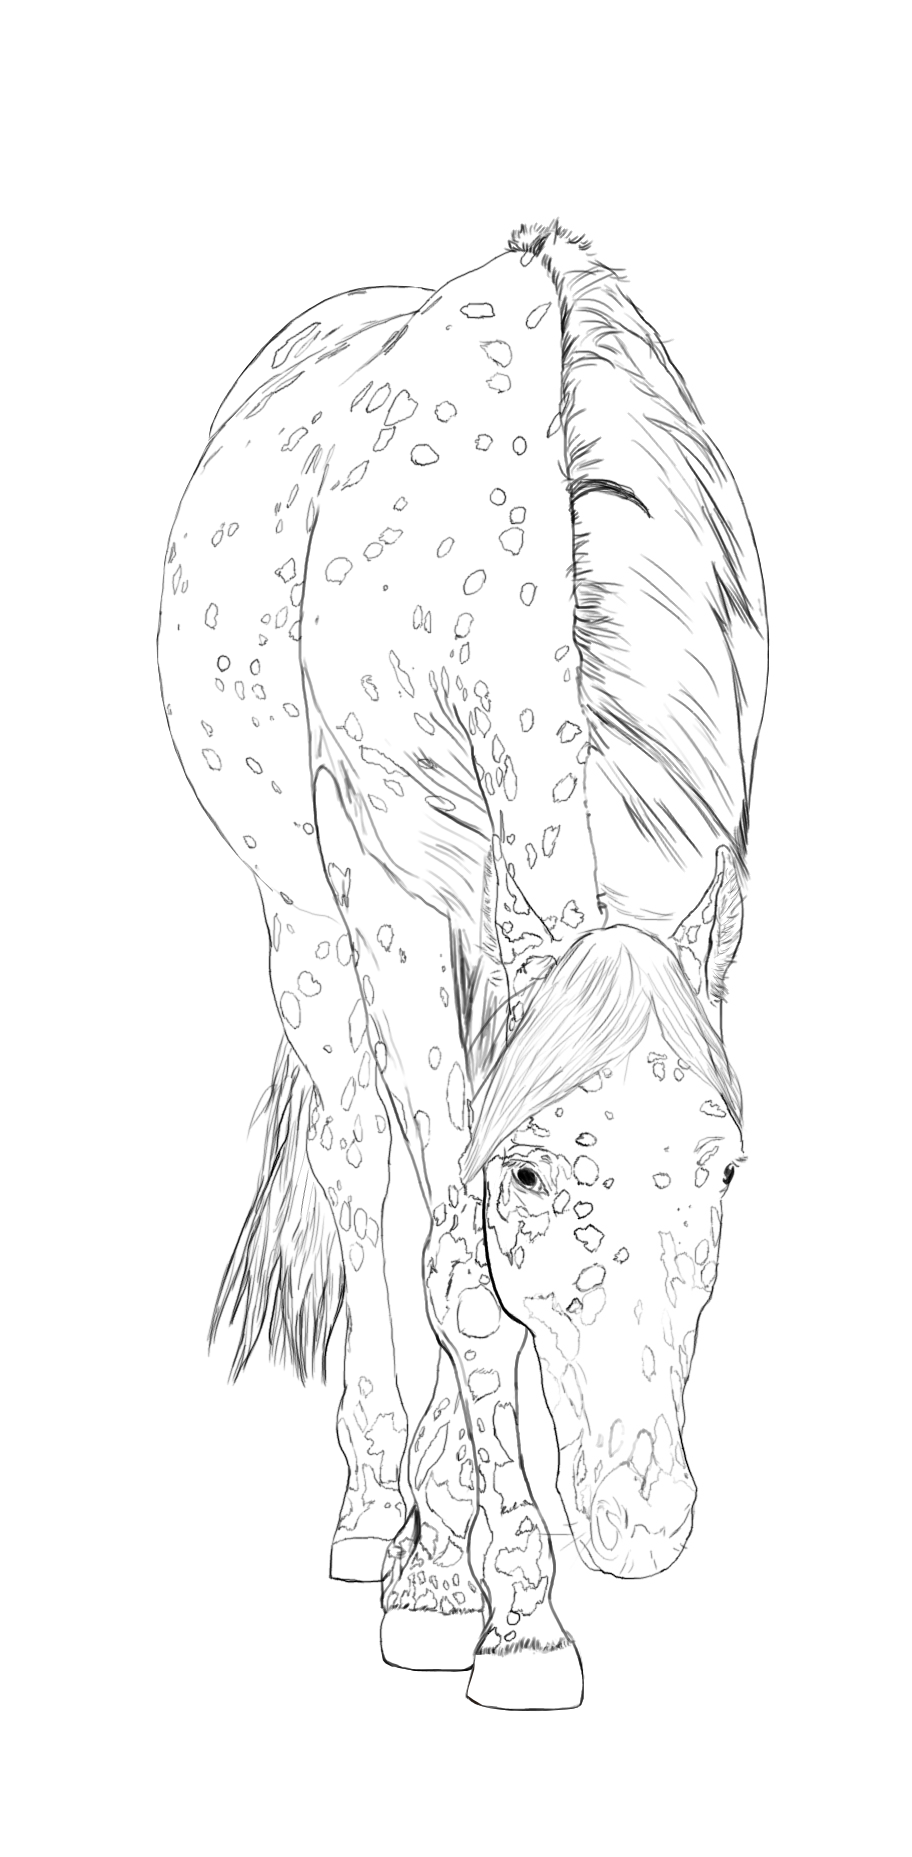 More Of My ArtAppaloosa Horse Line Art By StormsDestinydeviantart Kids ColoringColoring SheetsAdult